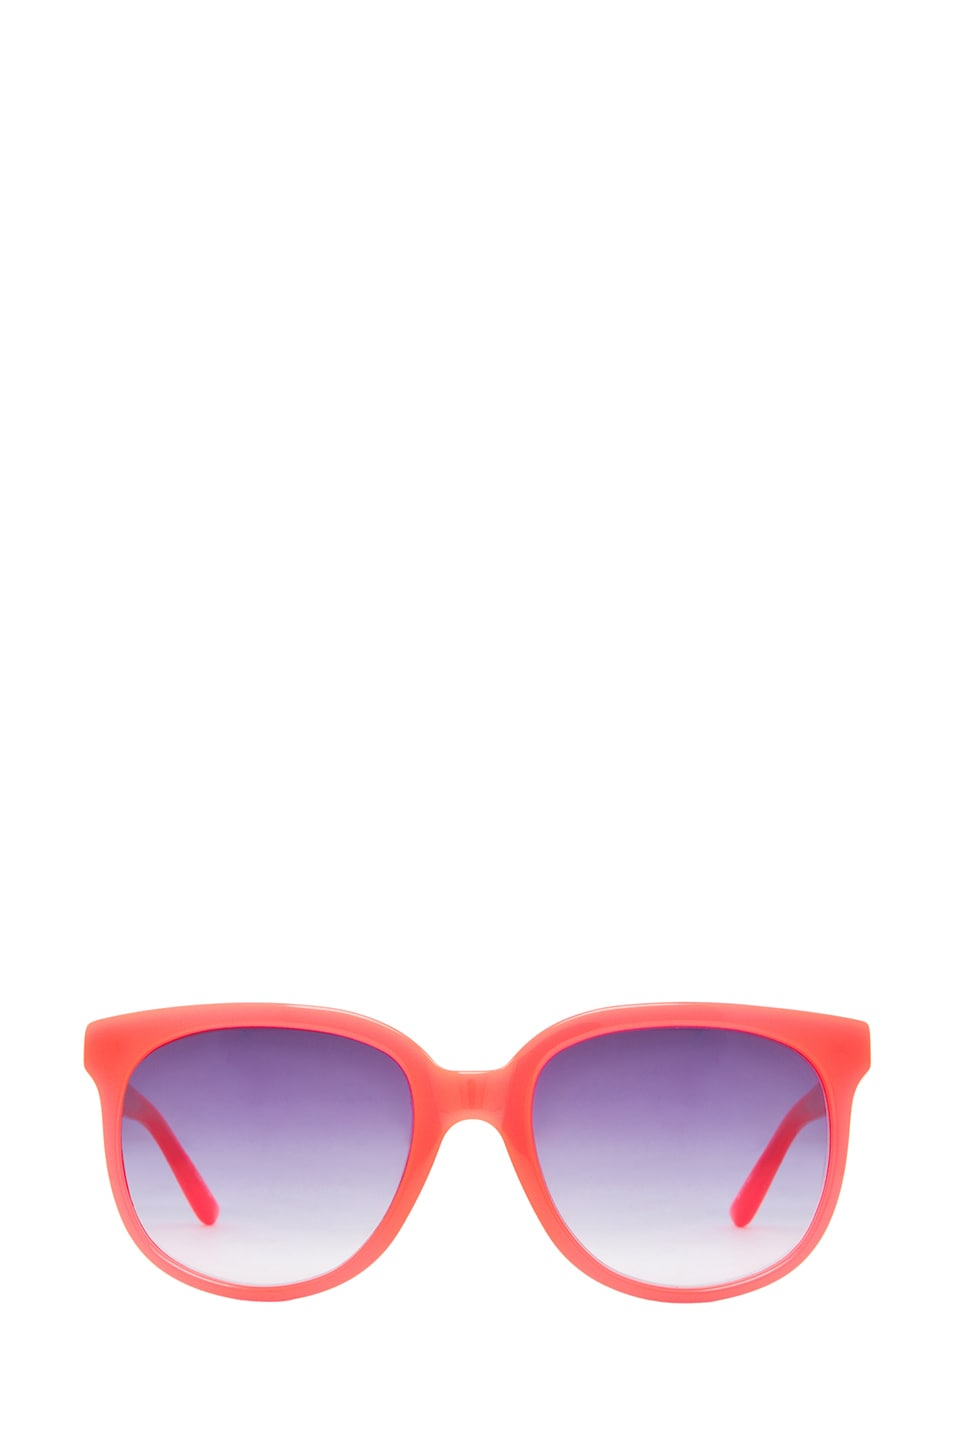 Image 1 of Matthew Williamson Sunglasses in Milky Neon Pink